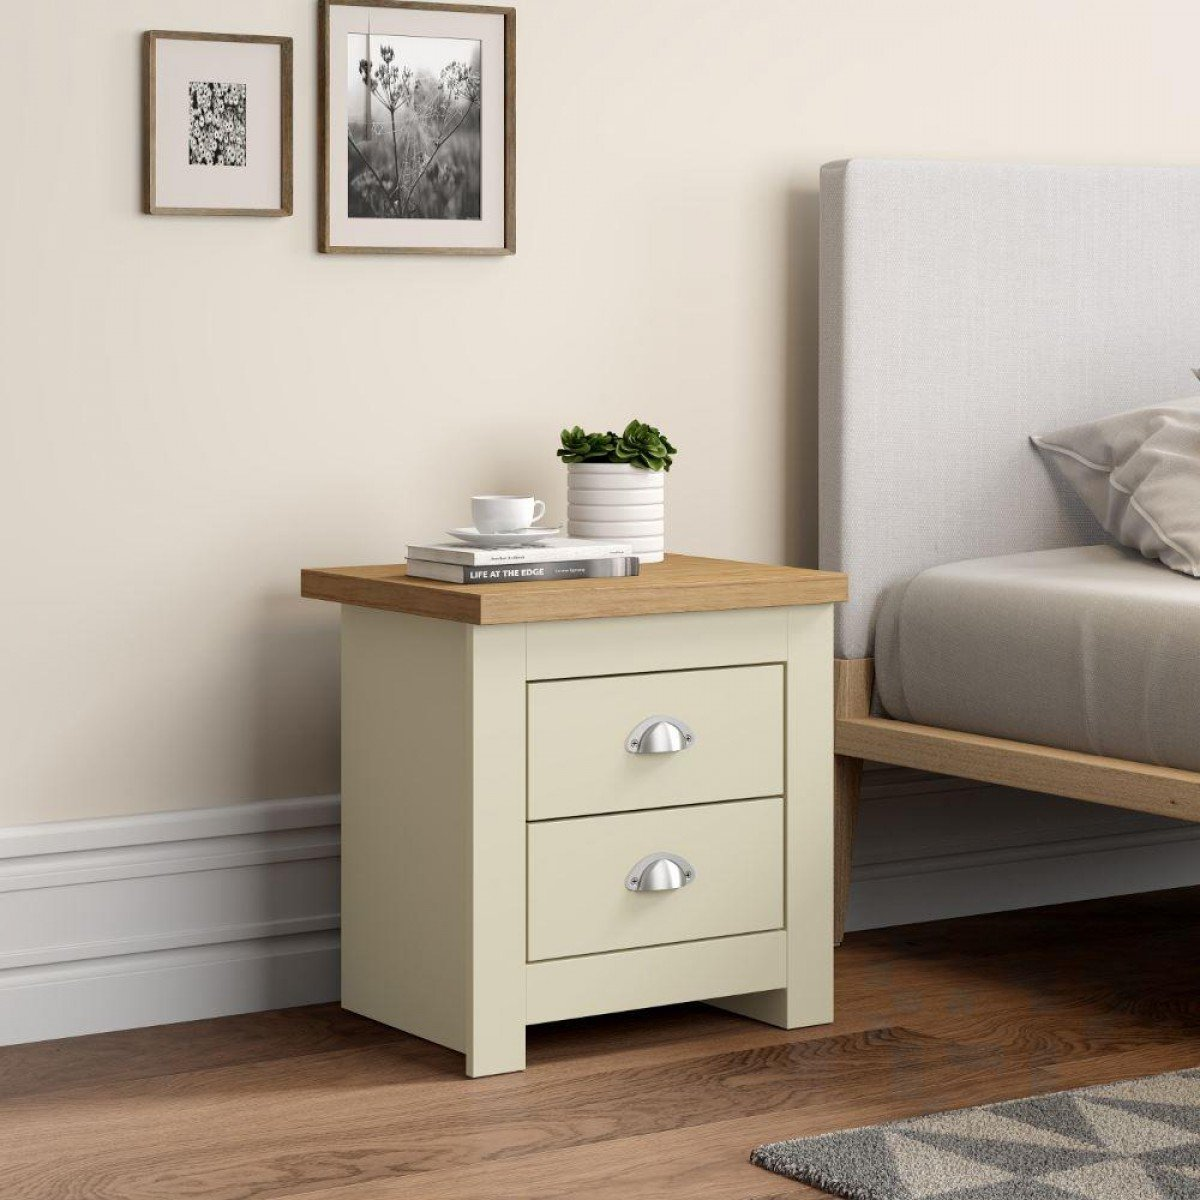 Winchester Cream and Oak Wooden 2 Drawer Bedside Table